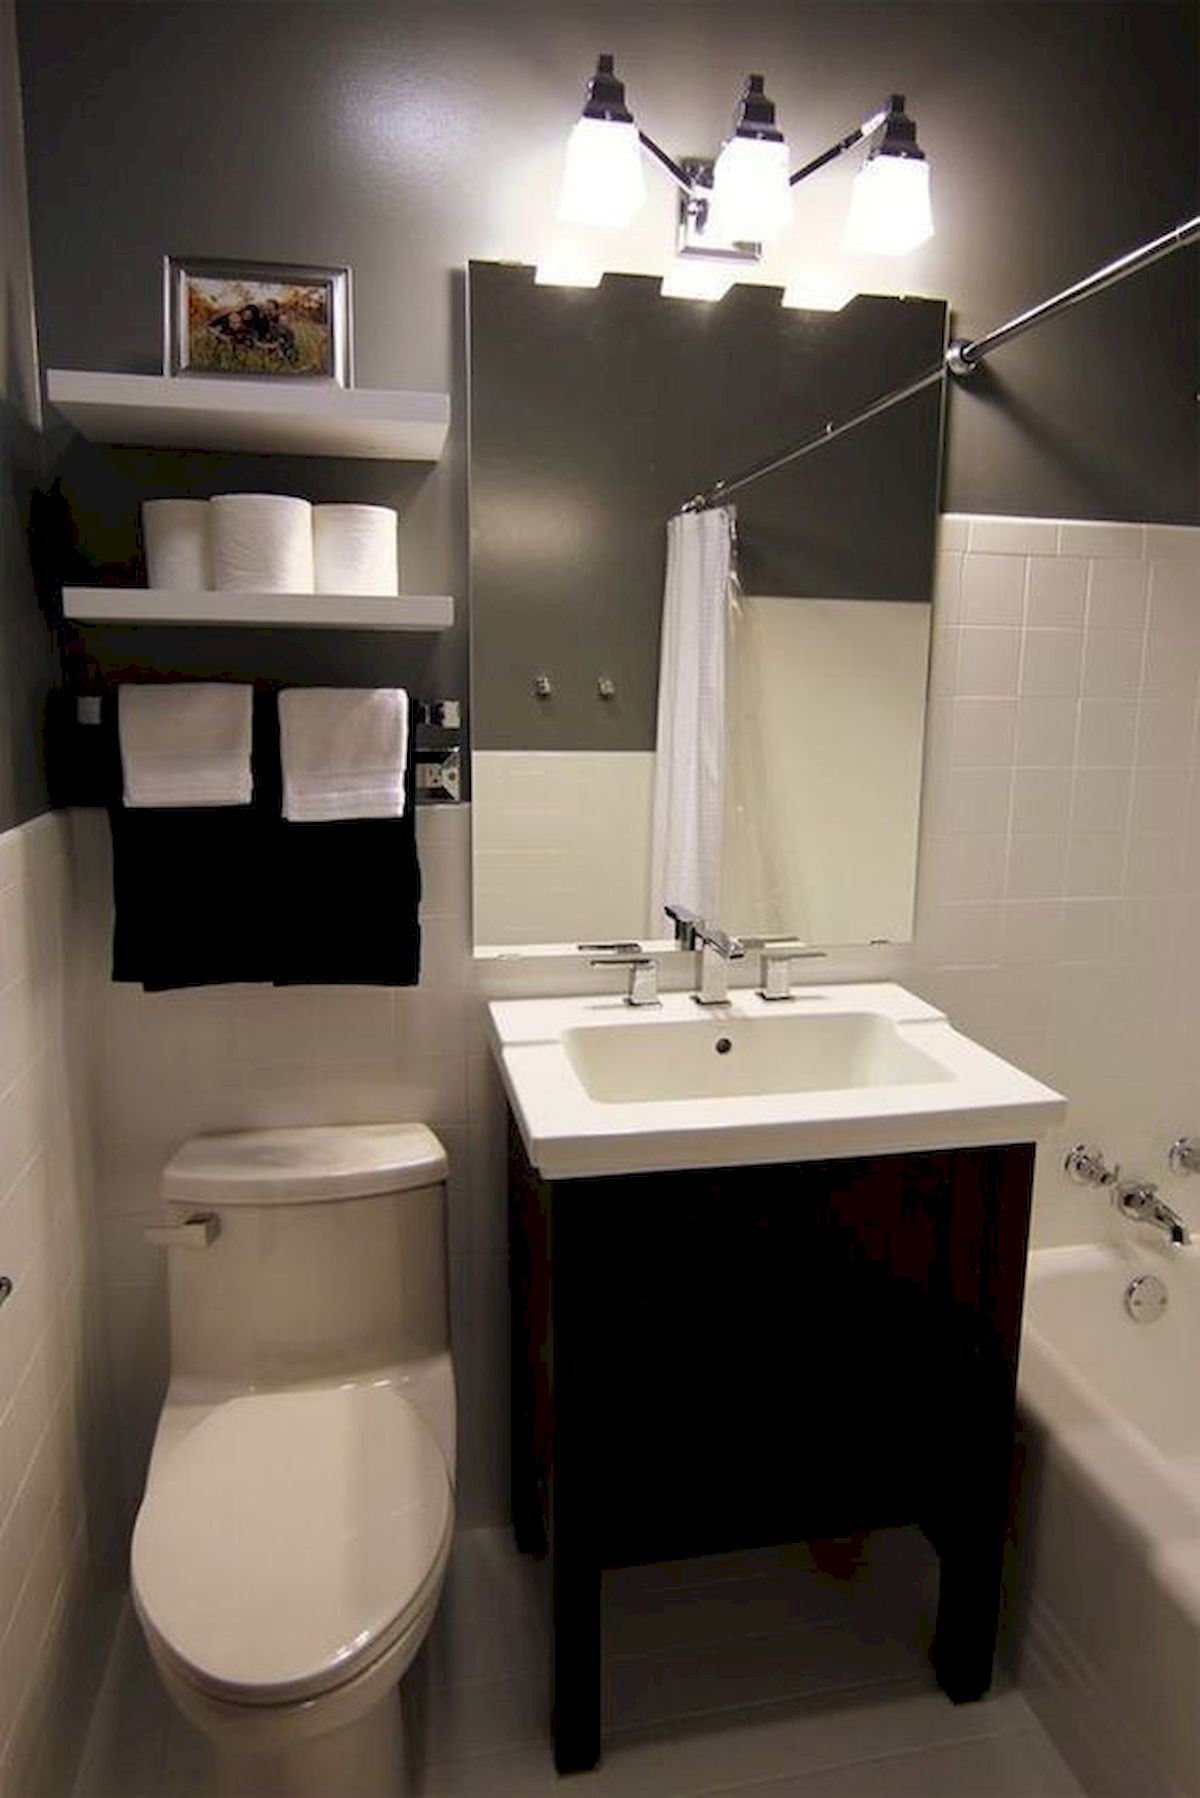 50 Best DIY Storage Design Ideas To Maximize Your Small Bathroom Space (1)